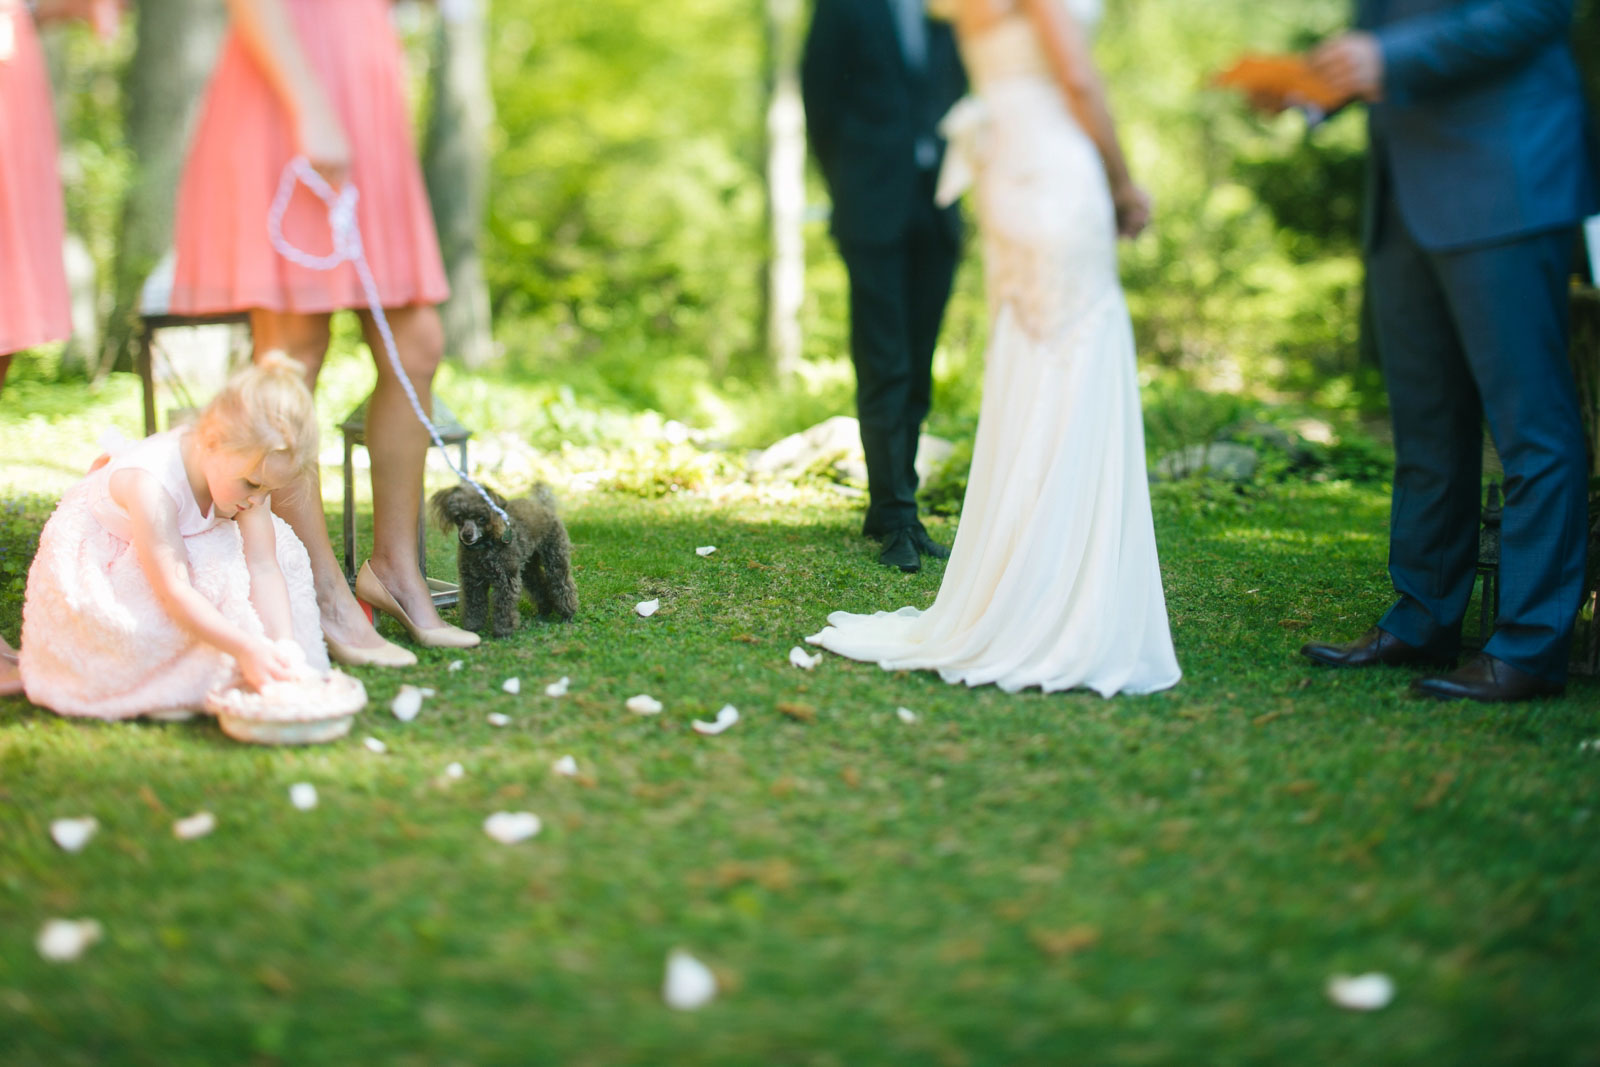 flower girl playing with flower petals during wedding ceremony with dog going down the aisle